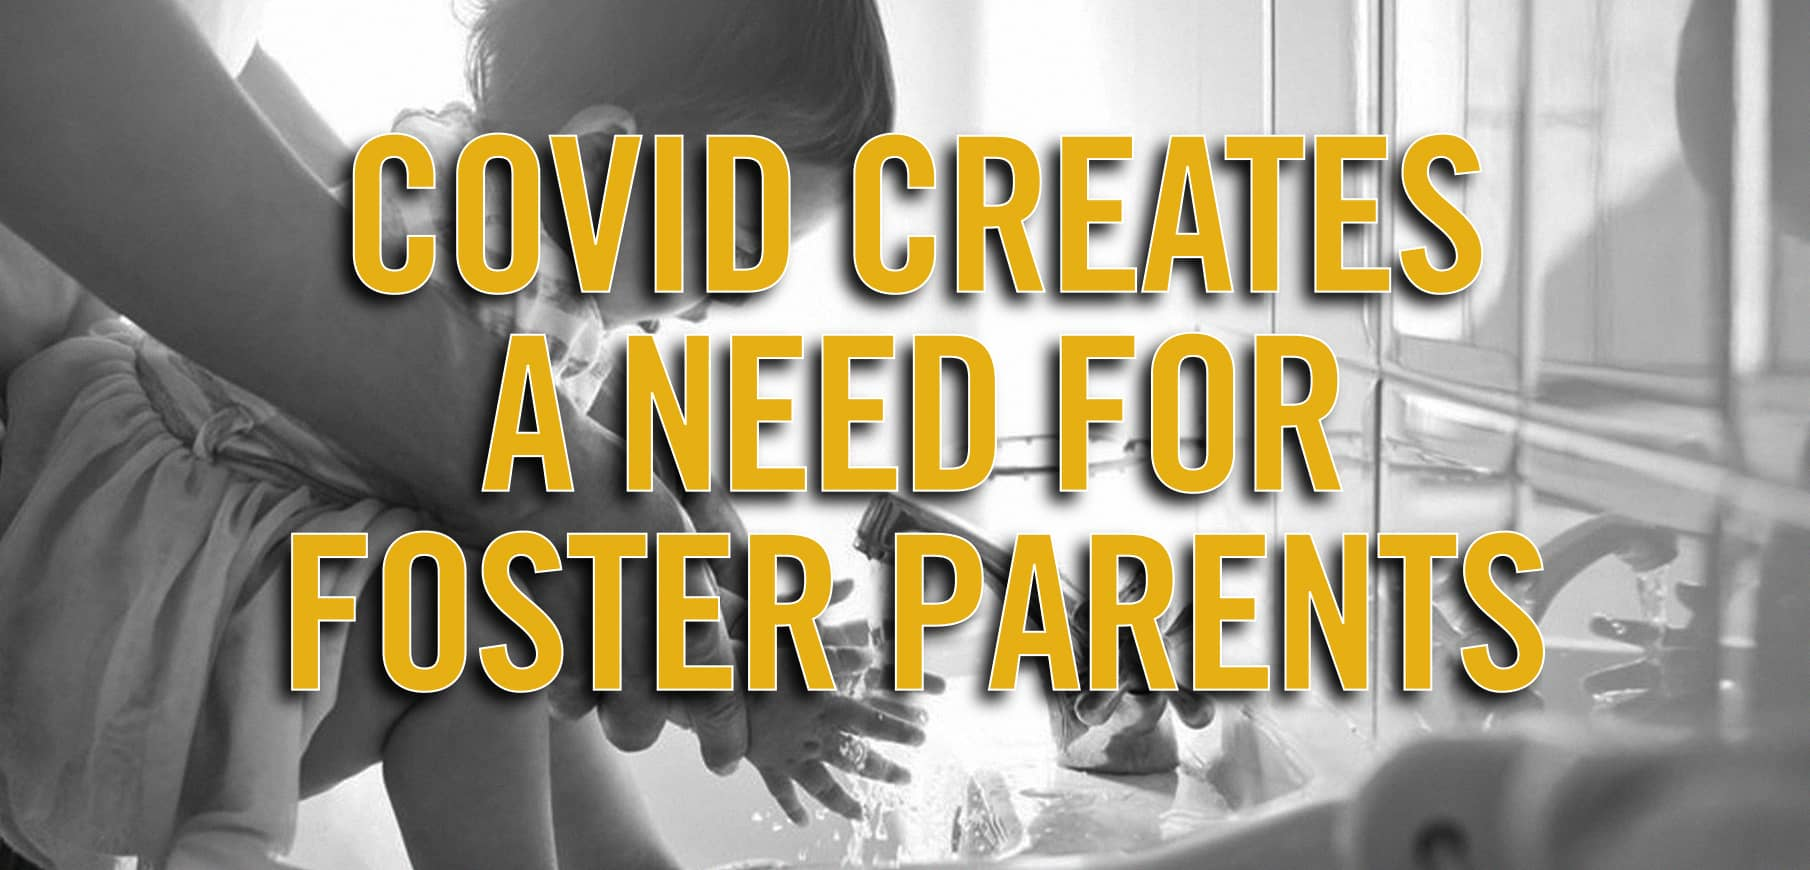 Covid Creates A Need For Foster Parents